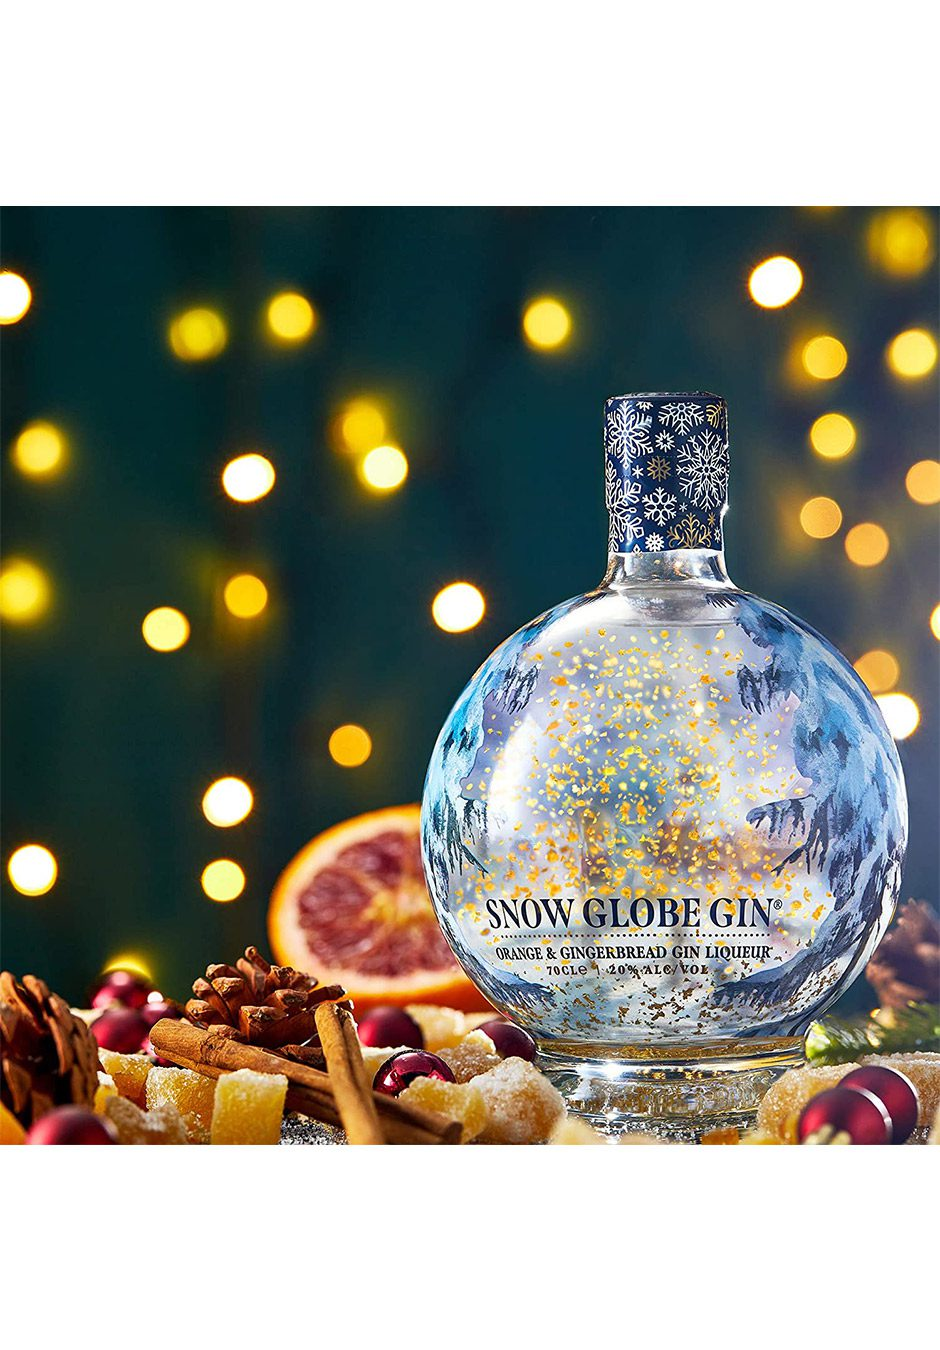 Snow Globe Gin 70cl   Orange And Gingerbread Liqueur   KeiCo Drinks